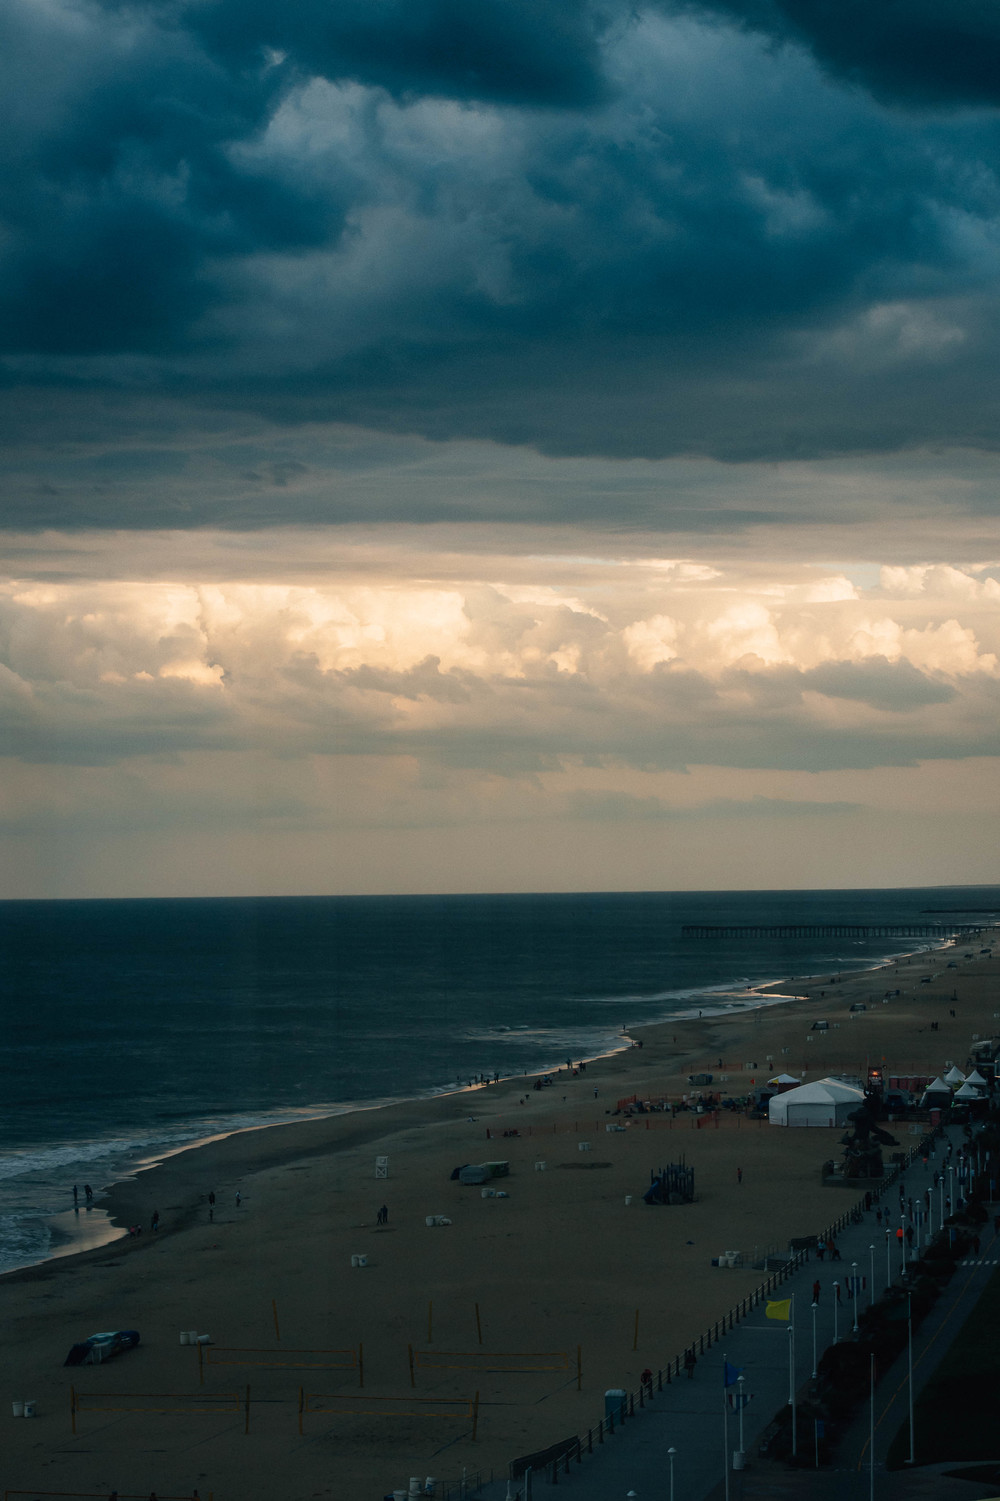 virginia-beach-wedding-photography-oceanfront-storm-clouds-melissa-bliss-photography